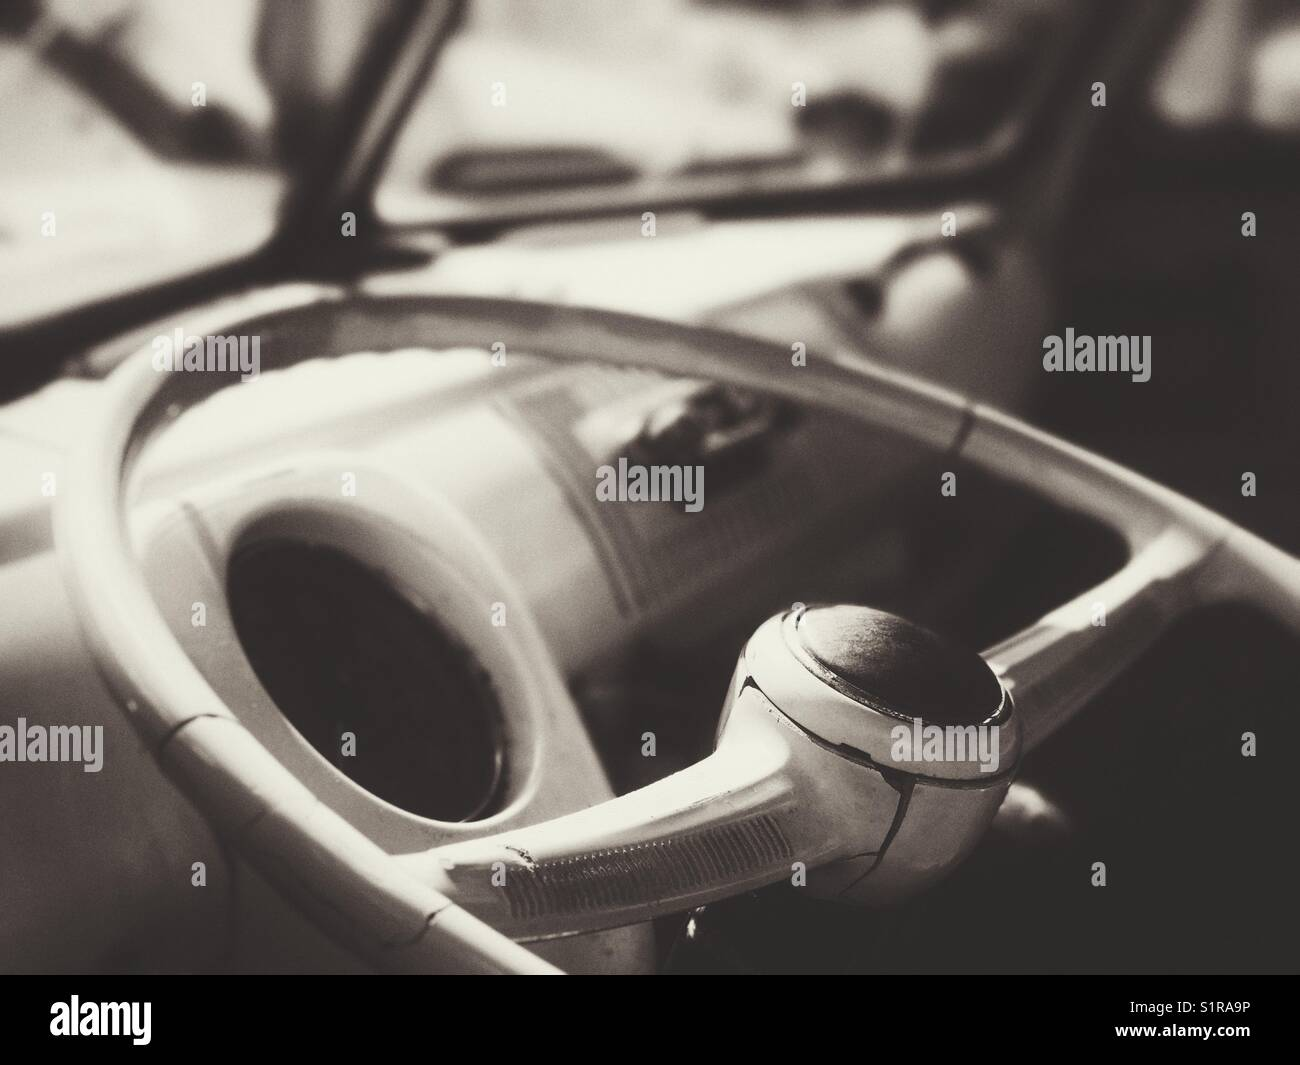 Vintage VW Bus steering wheel and dashboard Stock Photo: 310914290